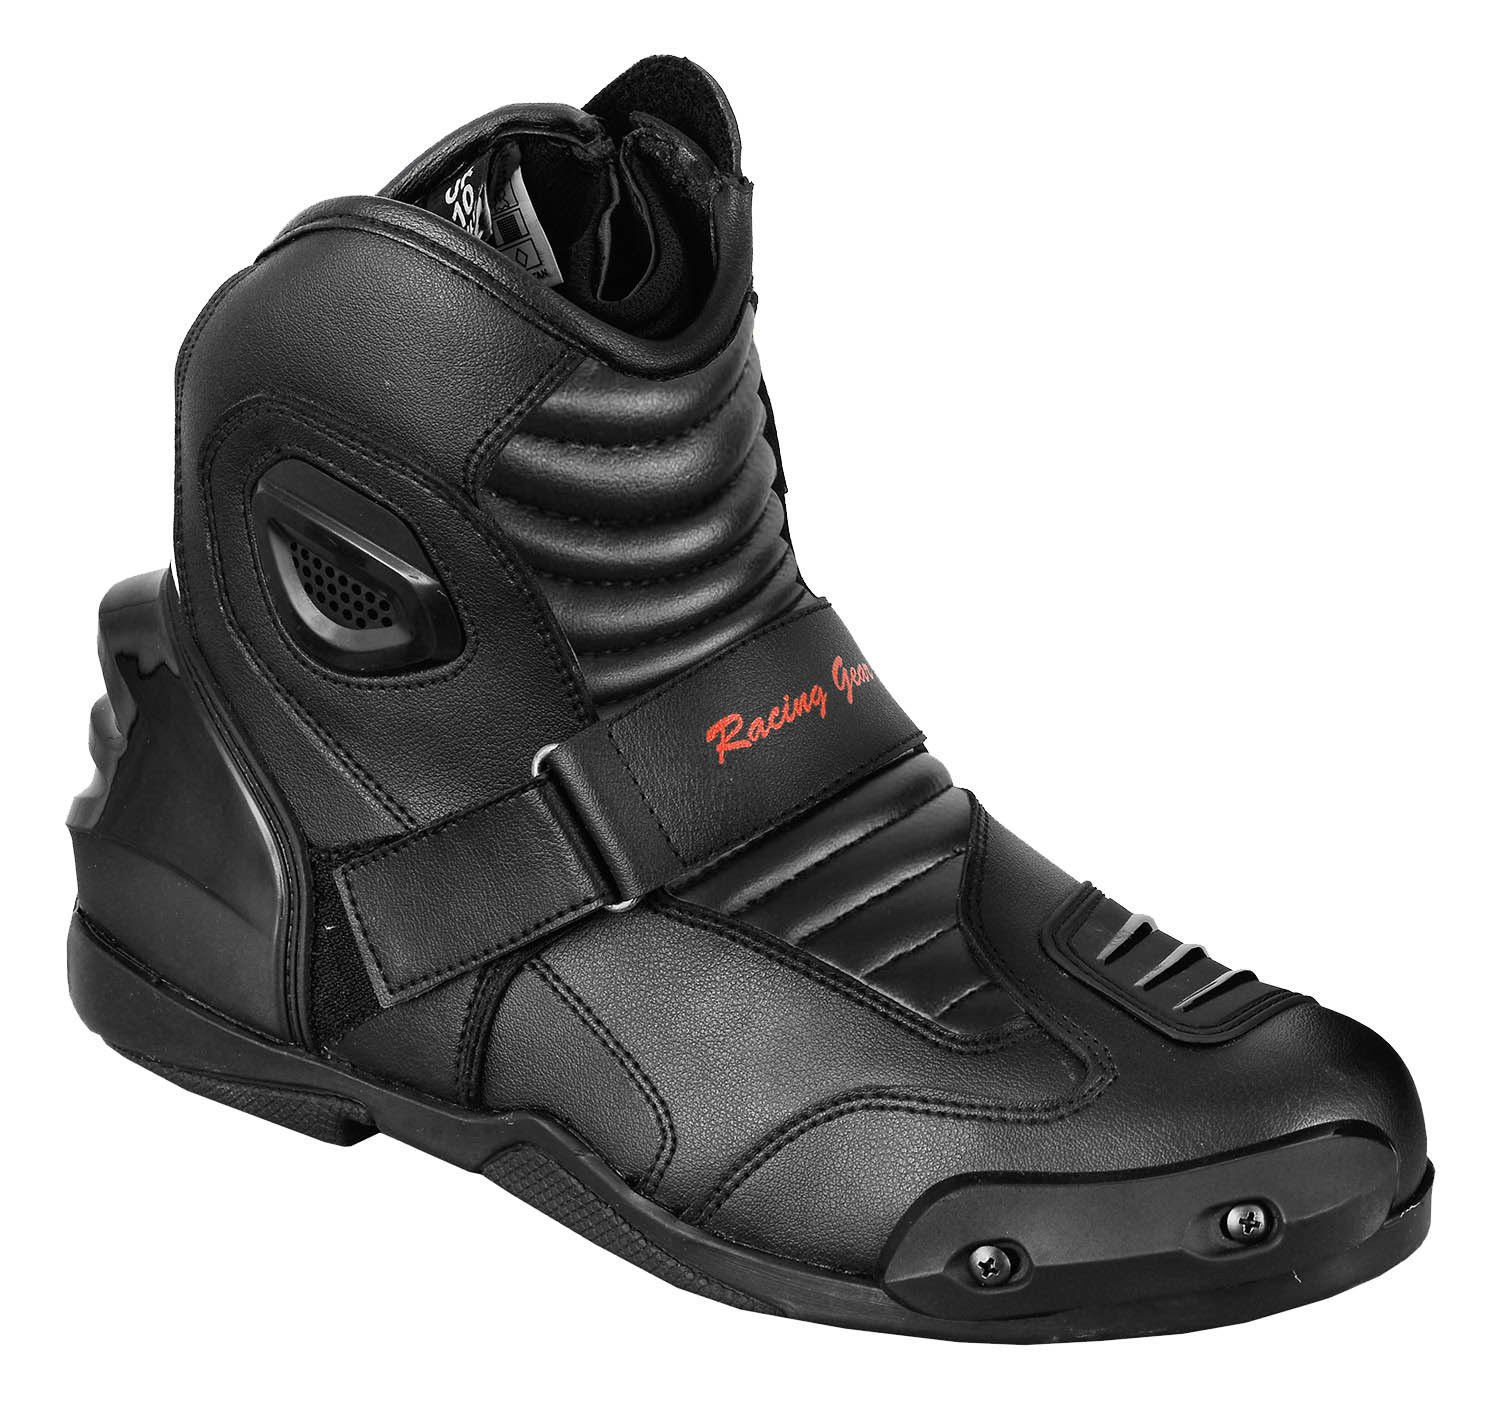 UK 7 EU 41 Black /& White PROFIRST Genuine Nextek Motorbike Leather Boots Motorcycle Shoes Short Ankle Protection Armoured Boot Anti Slip Racing Sports Reflector